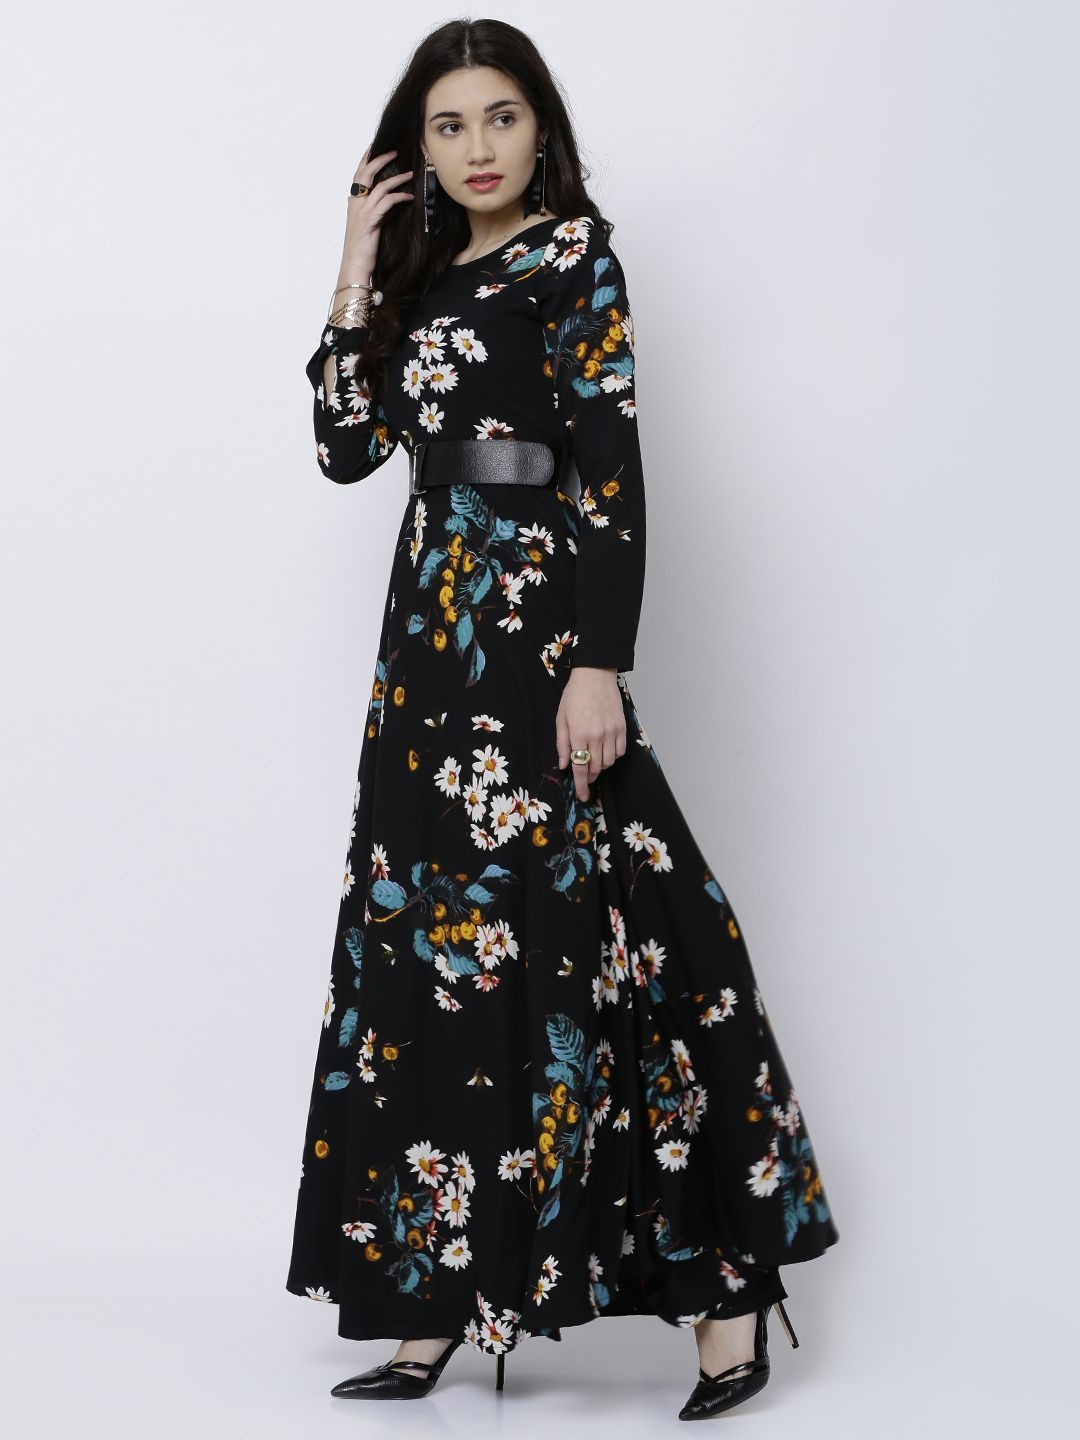 8a73ad0cee0 Tokyo Talkies Black Printed Maxi Dress  Black Polyester Printed Party